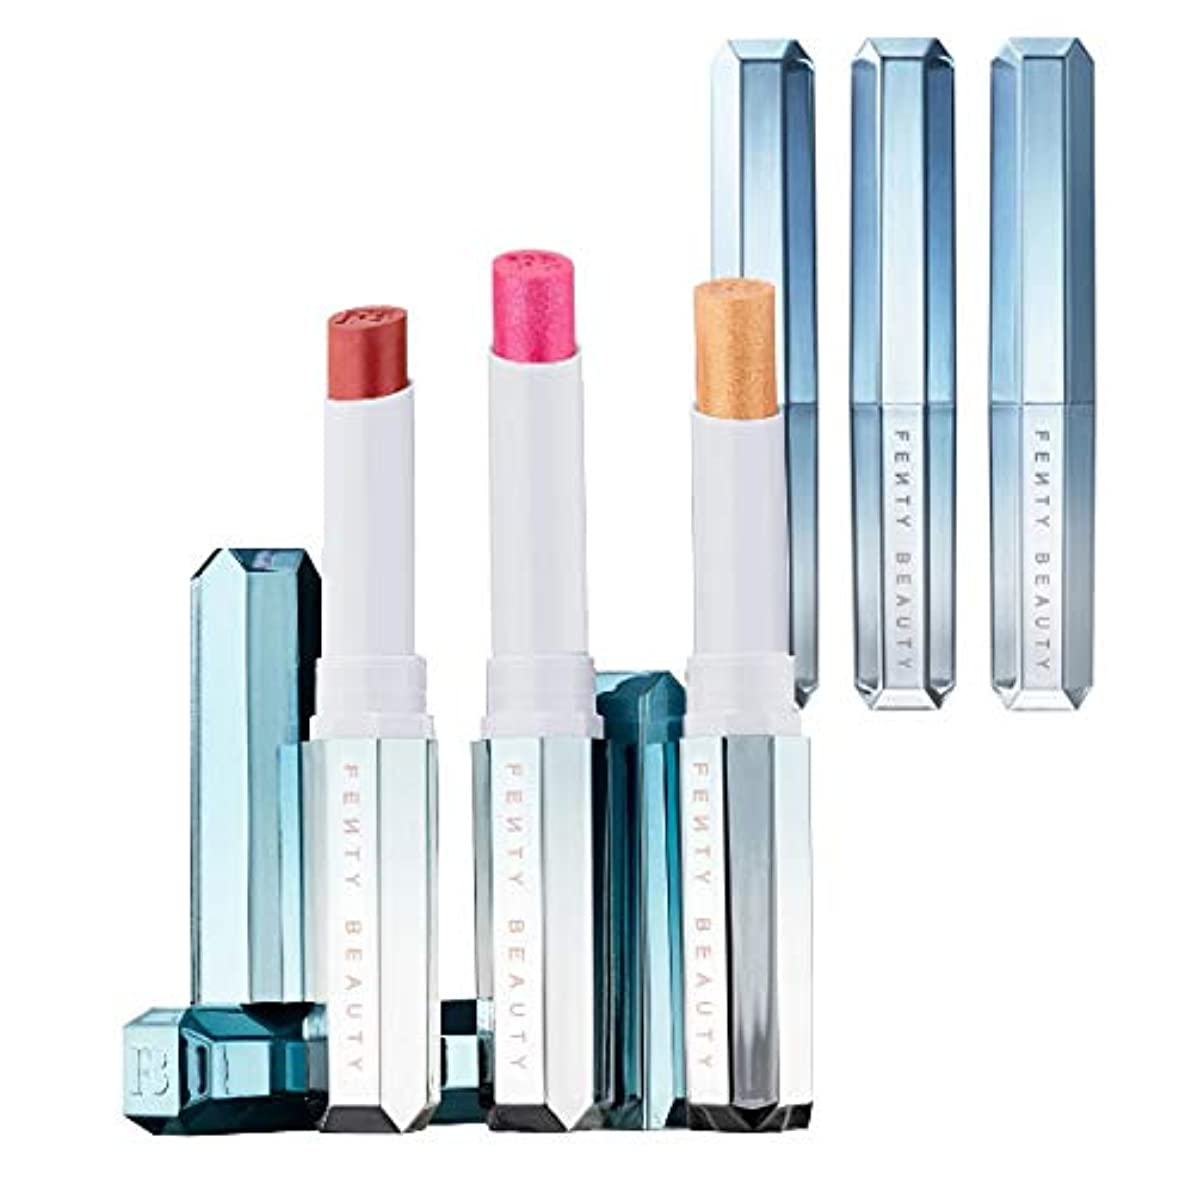 特許リンスギャングスターFENTY BEAUTY BY RIHANNA 限定版Frosted Metal Lipstick Snow Daze - Cuffing Season, What's Your Numb'a, So Chilli [海外直送品...